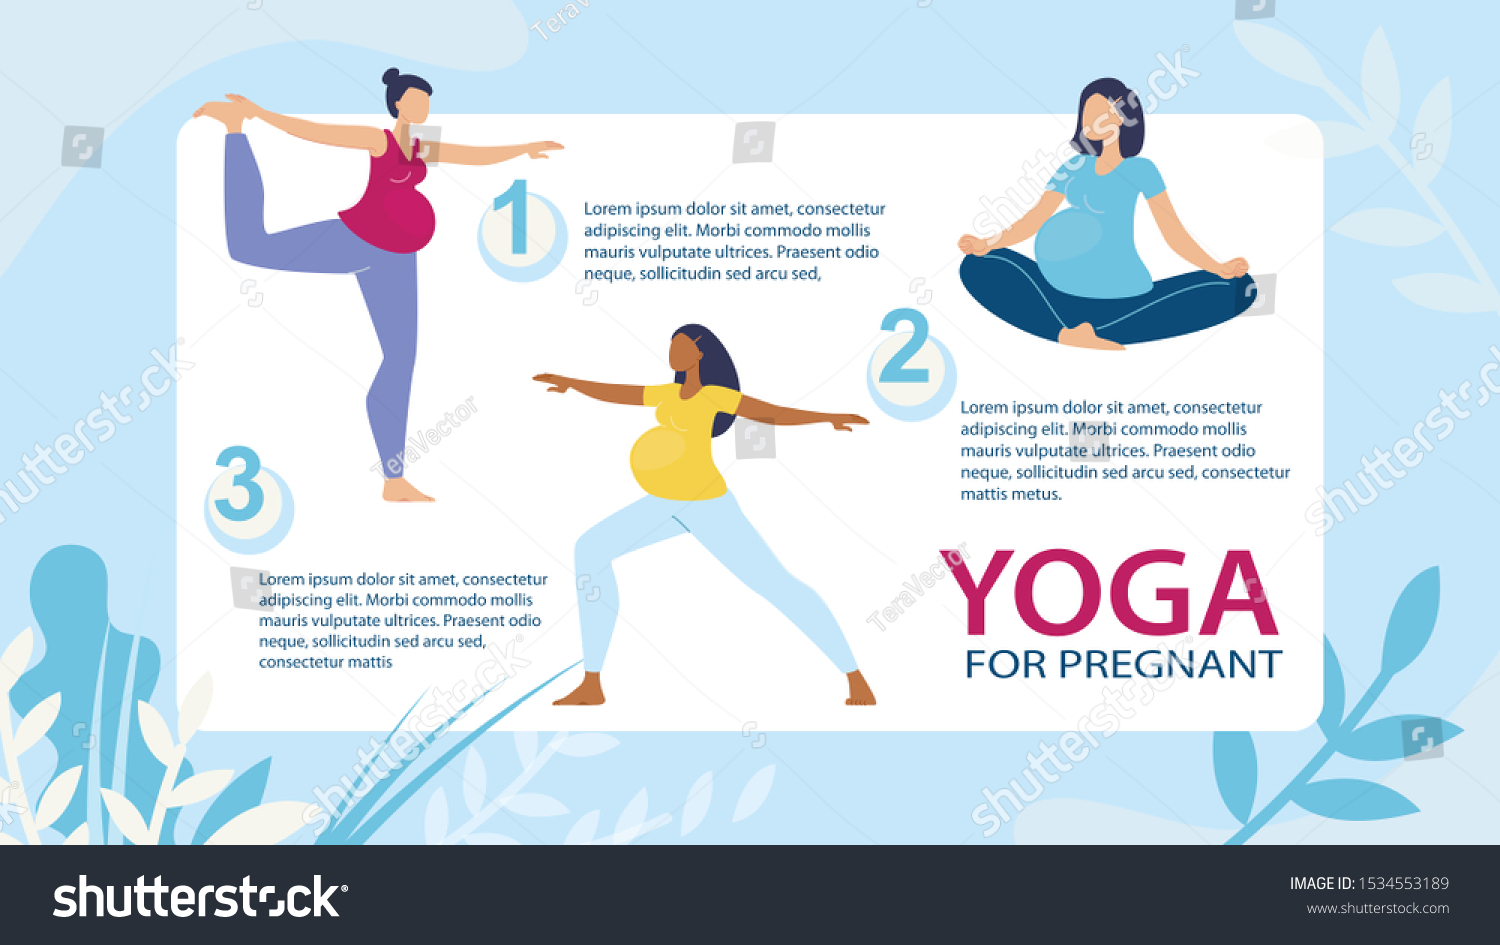 Yoga Exercises Fitness Courses Pregnant Women Stock Vector Royalty Free 1534553189